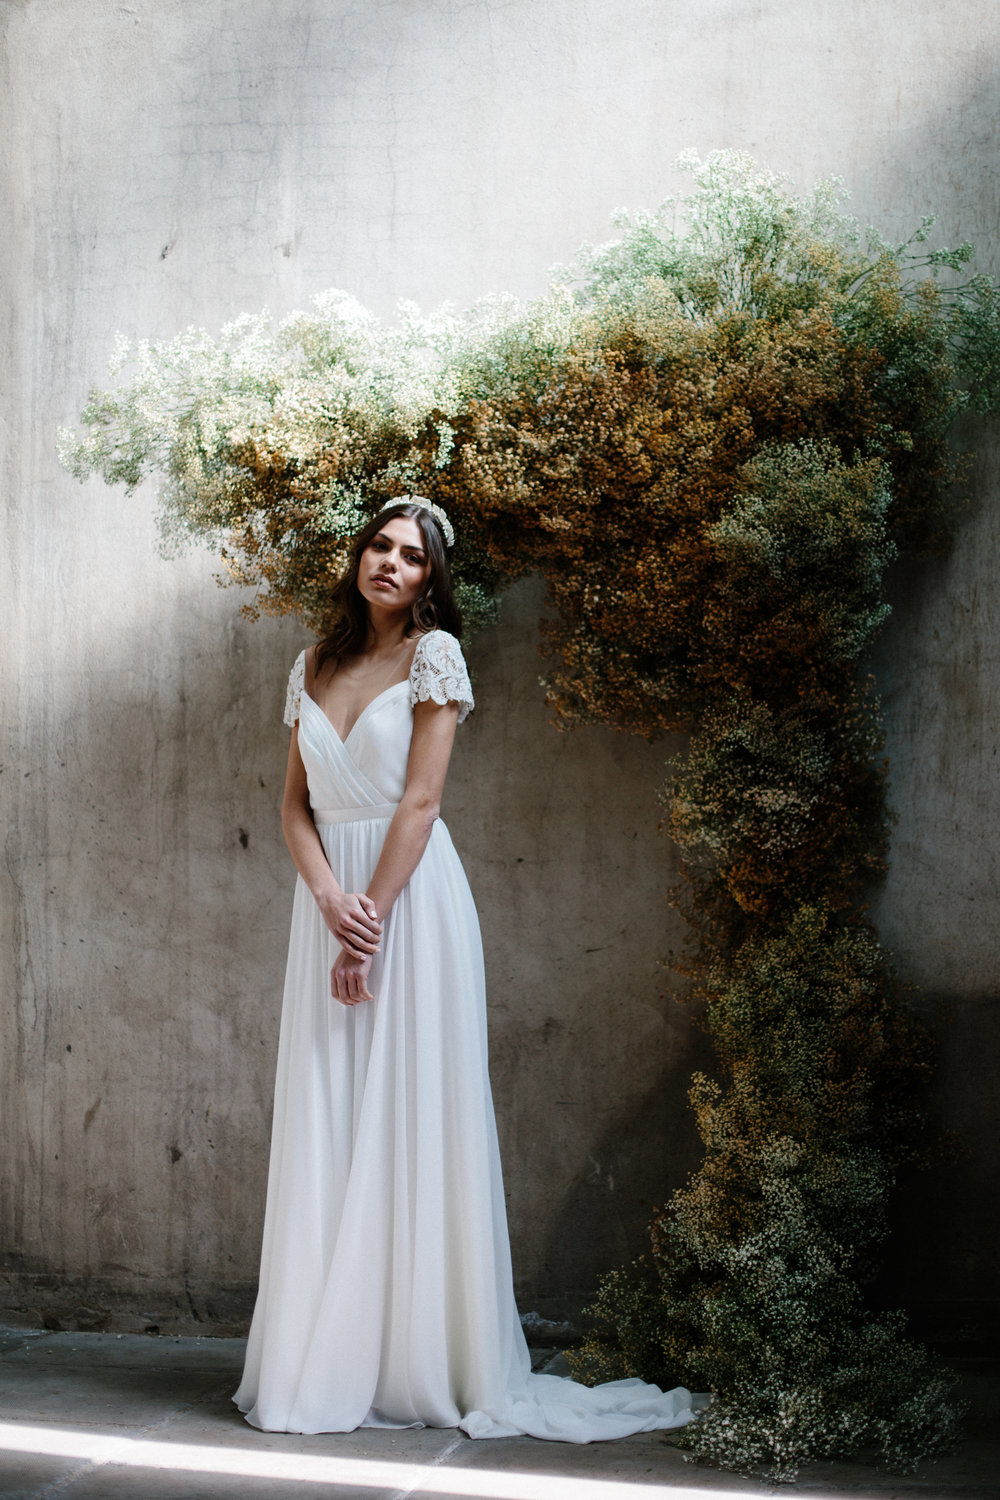 Mary gown by Truvelle Bridal